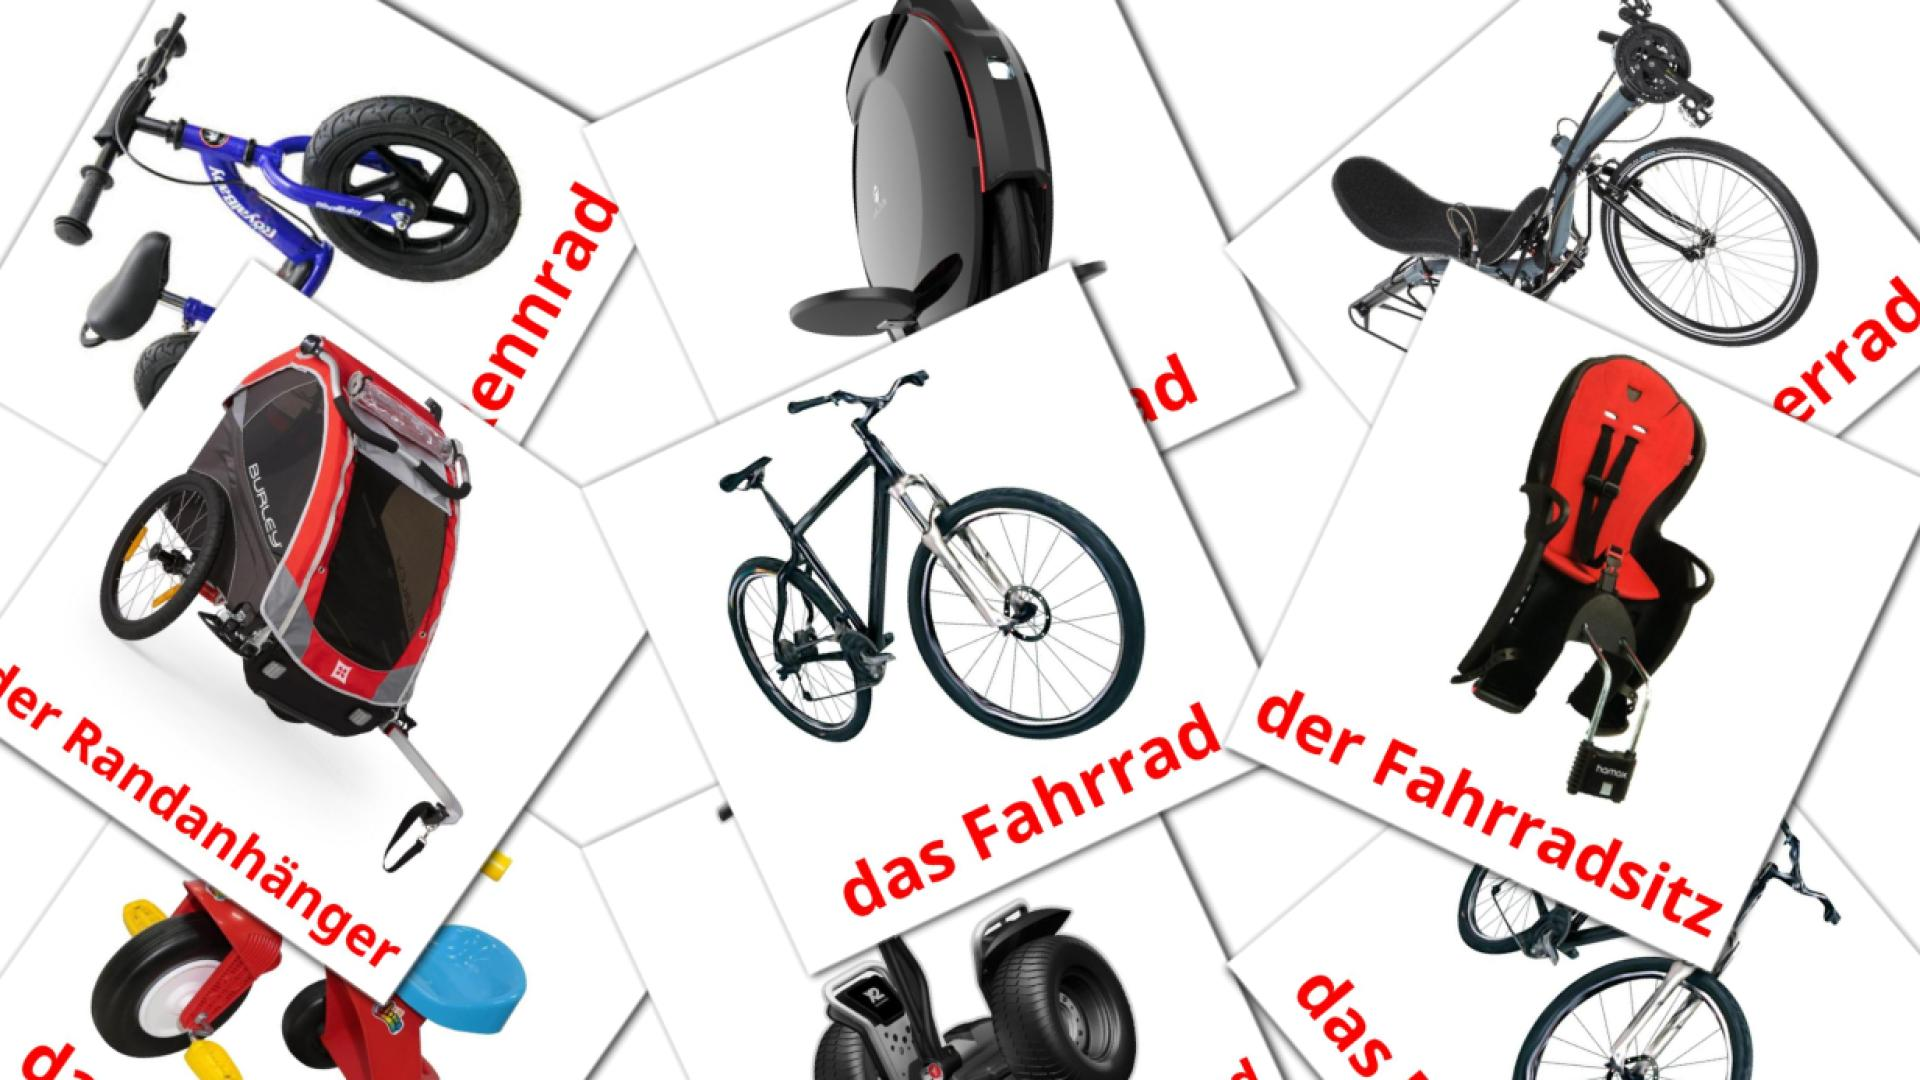 Bicycle transport flashcards